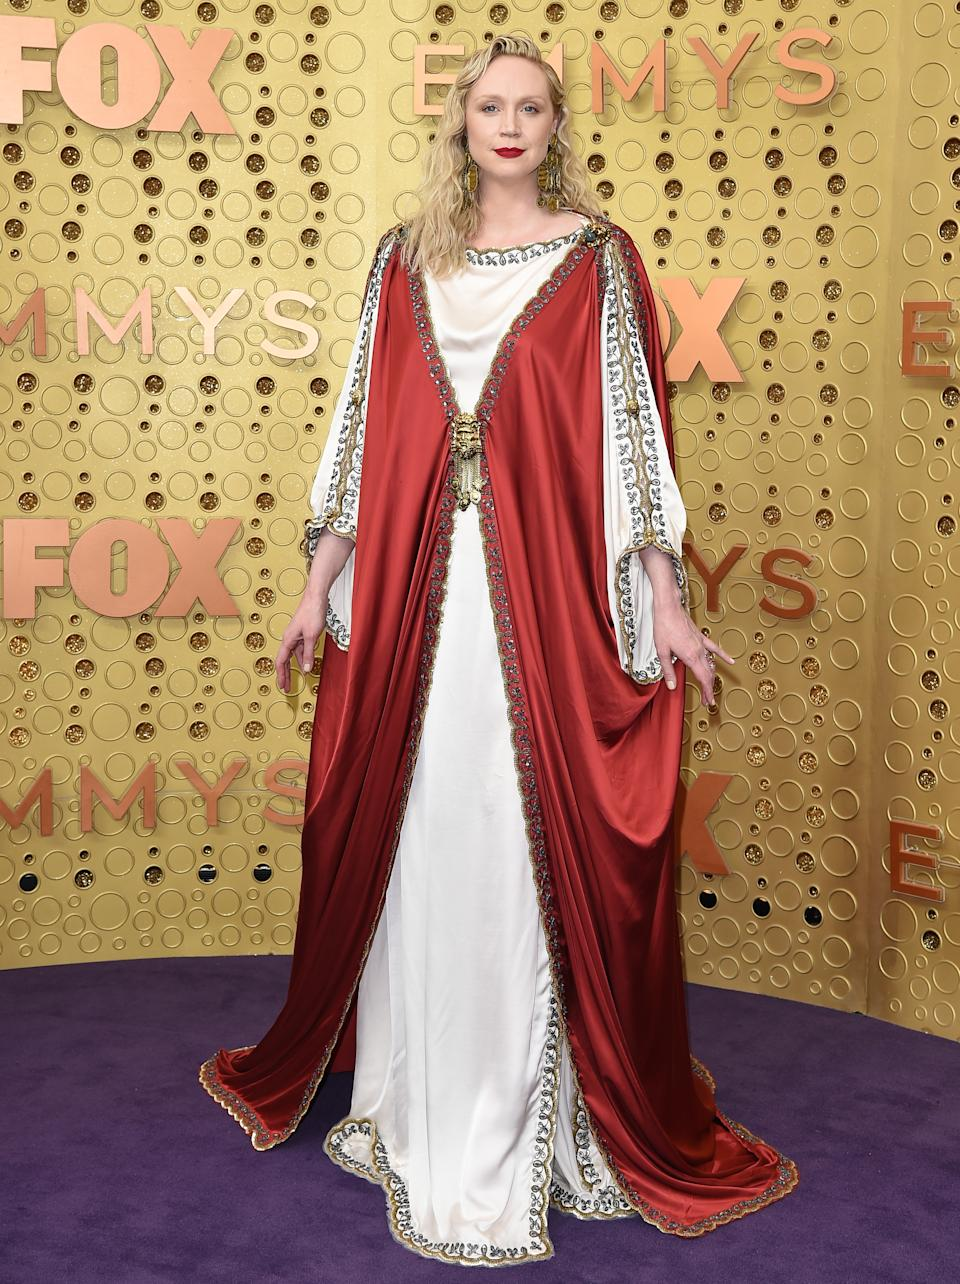 """<p>The """"Game of Thrones"""" star's biblical look at the 2019 Emmy Awards that sometimes, even Gucci makes mistakes. (Image via Getty Images)</p>"""